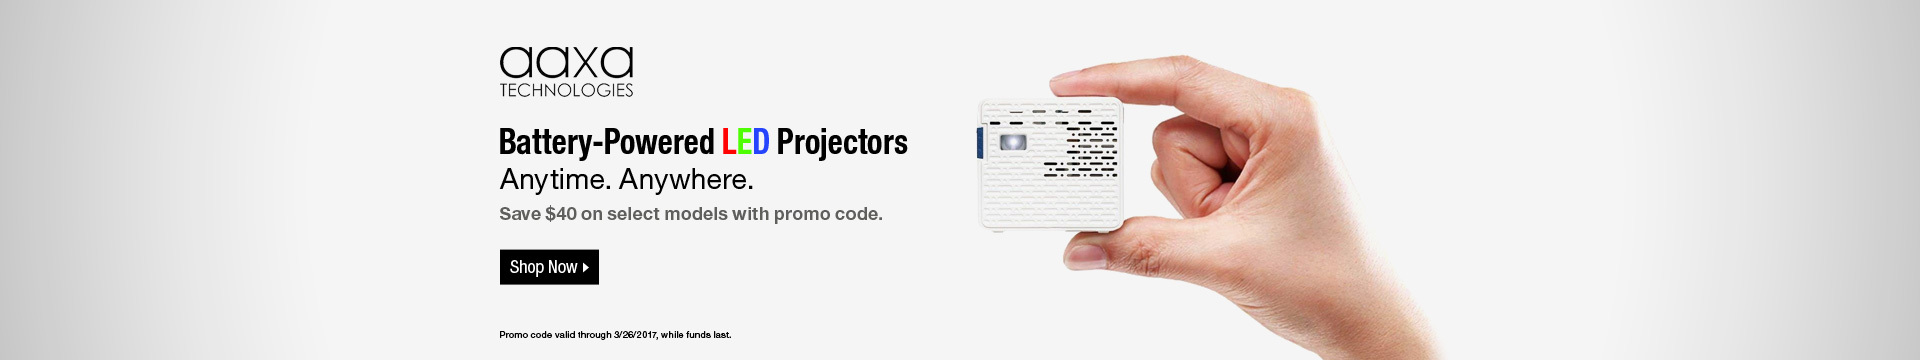 Battery-Powered LED Projectors